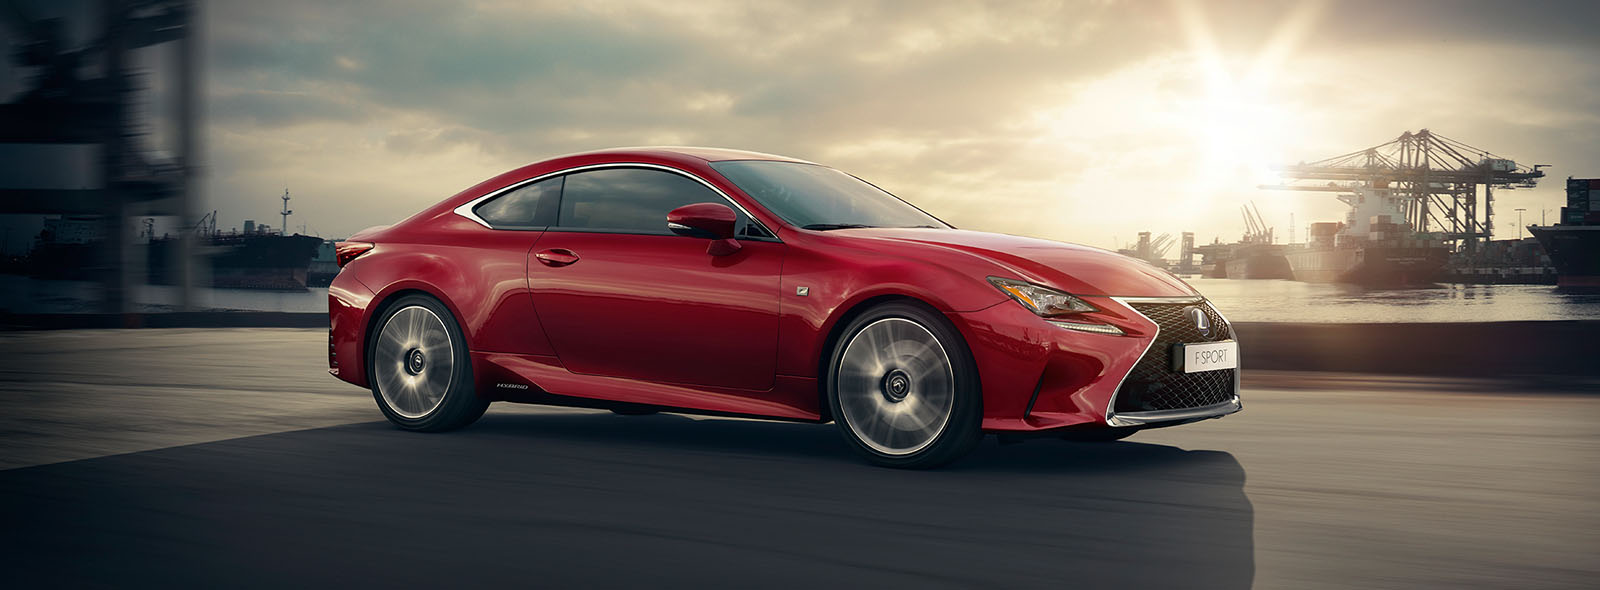 Lexus RC Hybrid Amazing Attraction